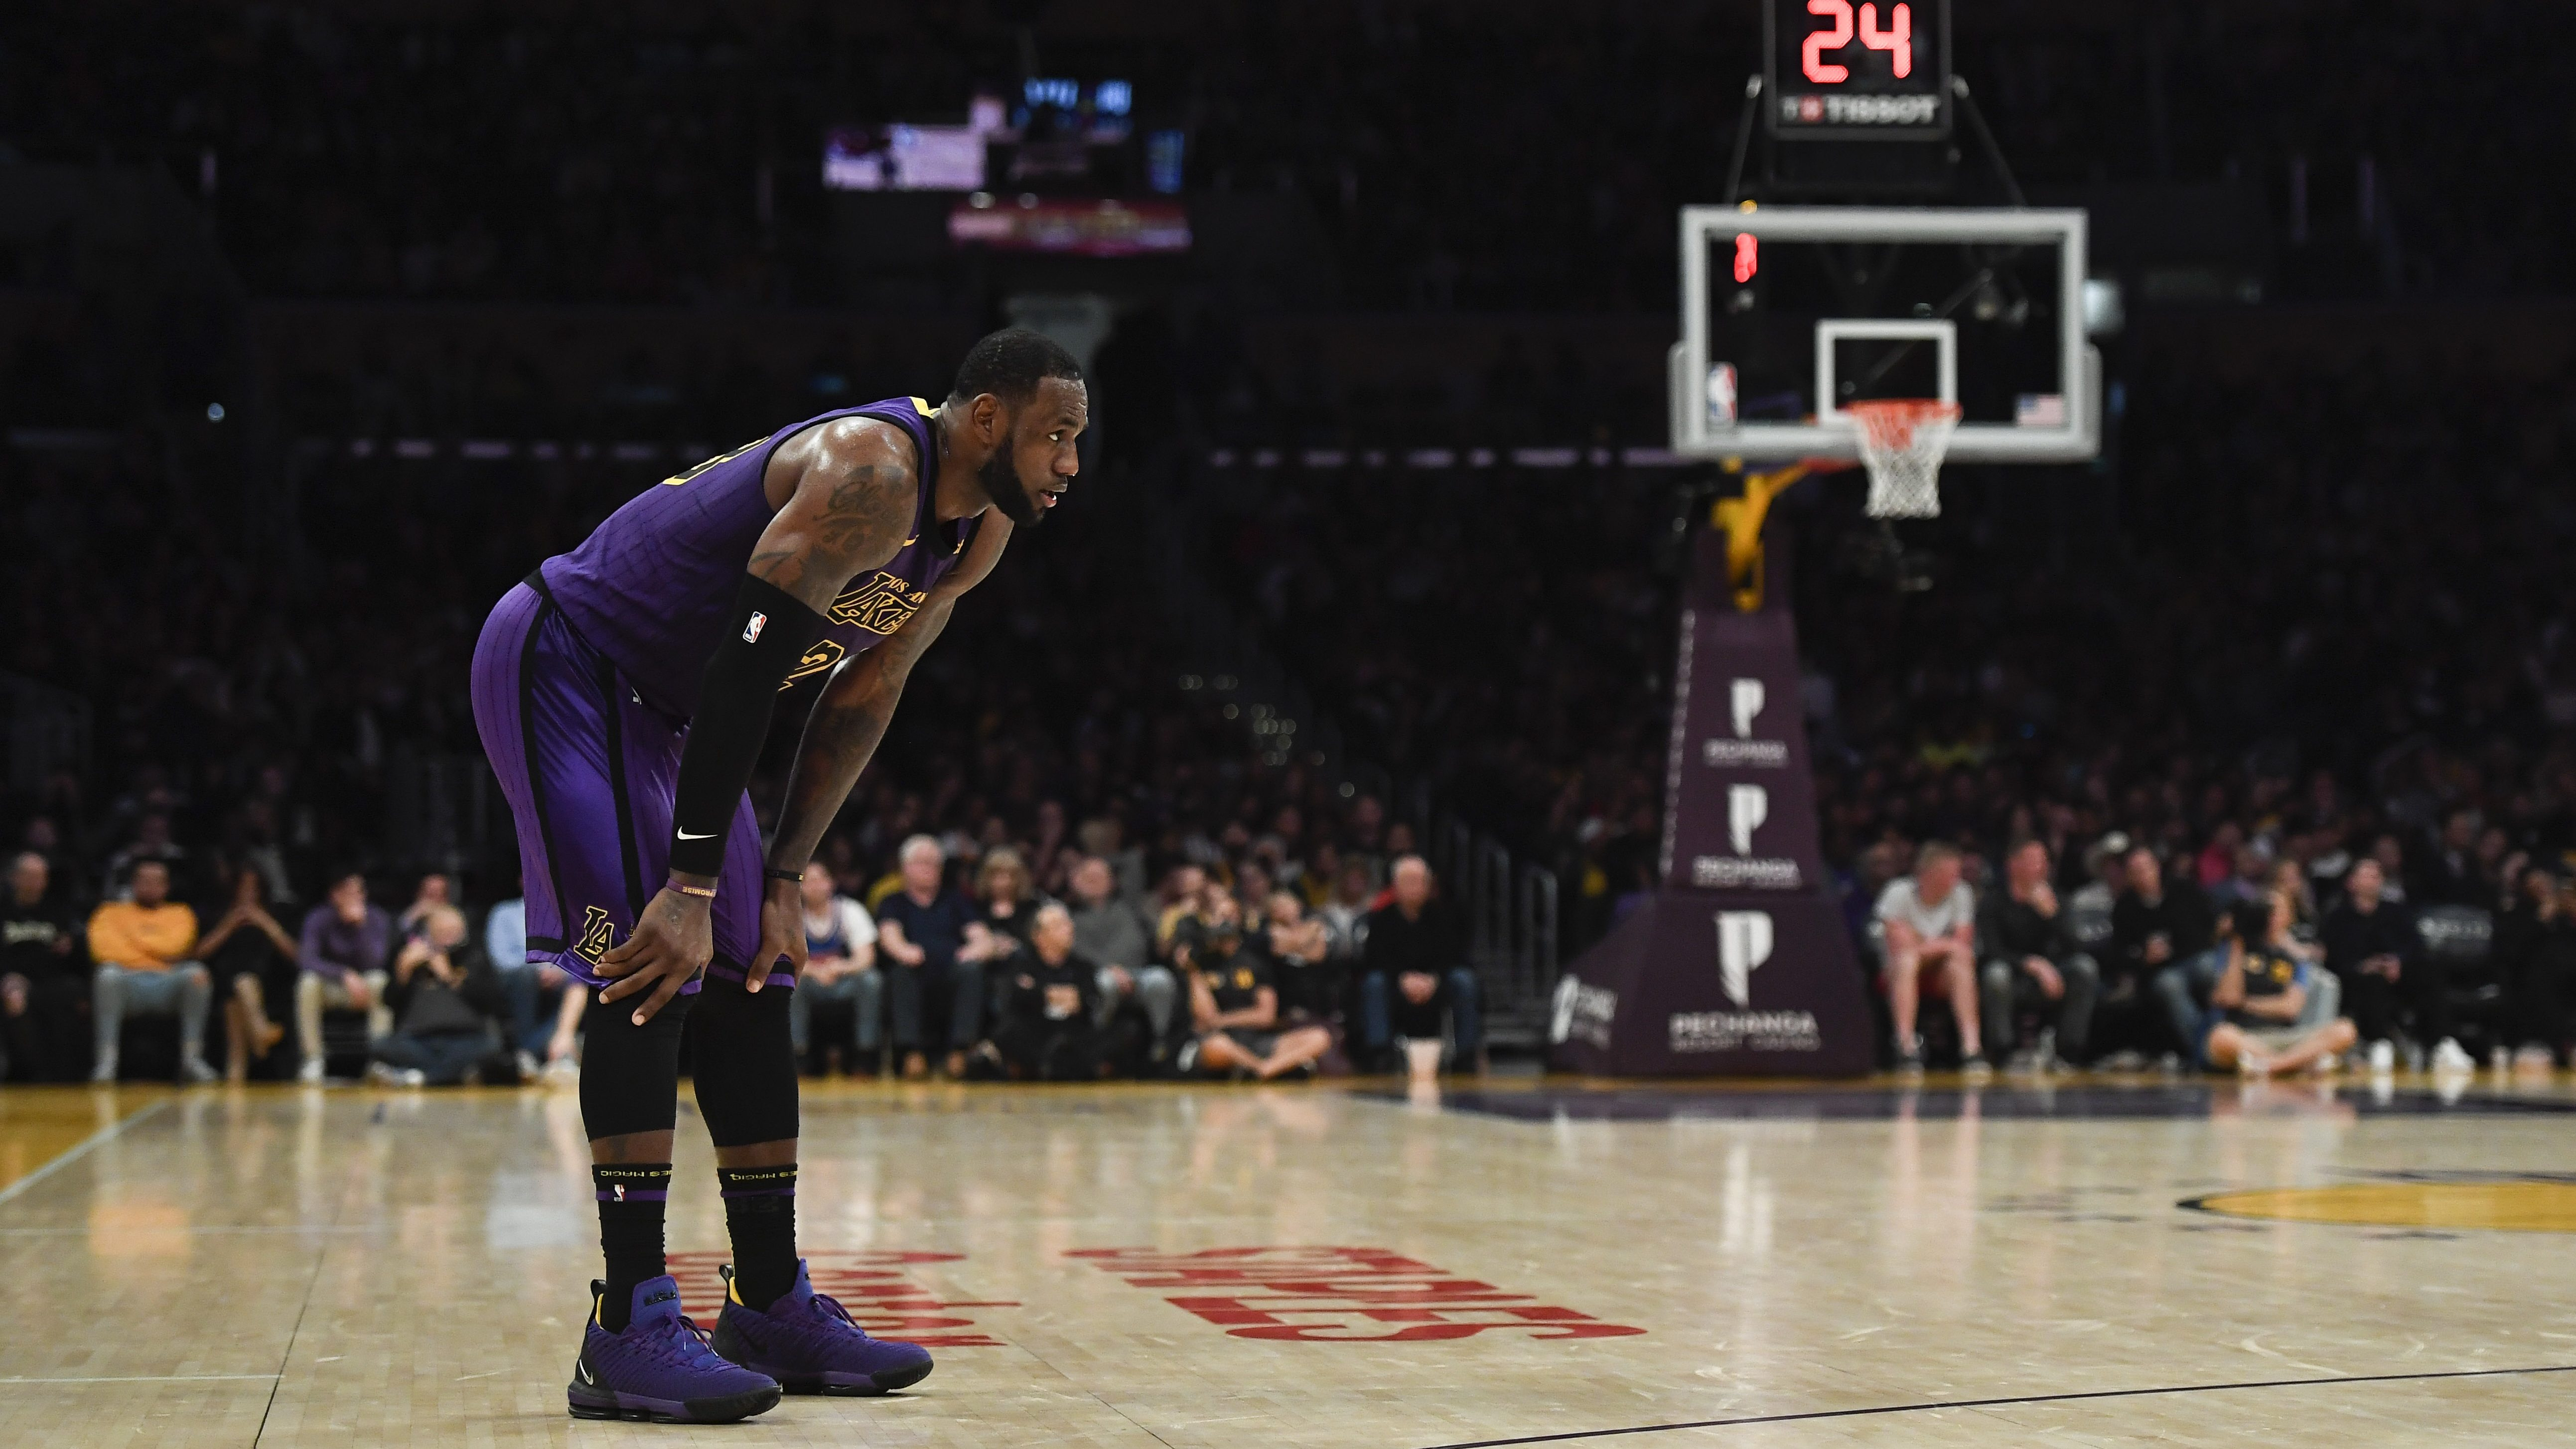 Wack Sport Tennis De Table Much Hated On Lebron James Is Living His Kingdom Come Season